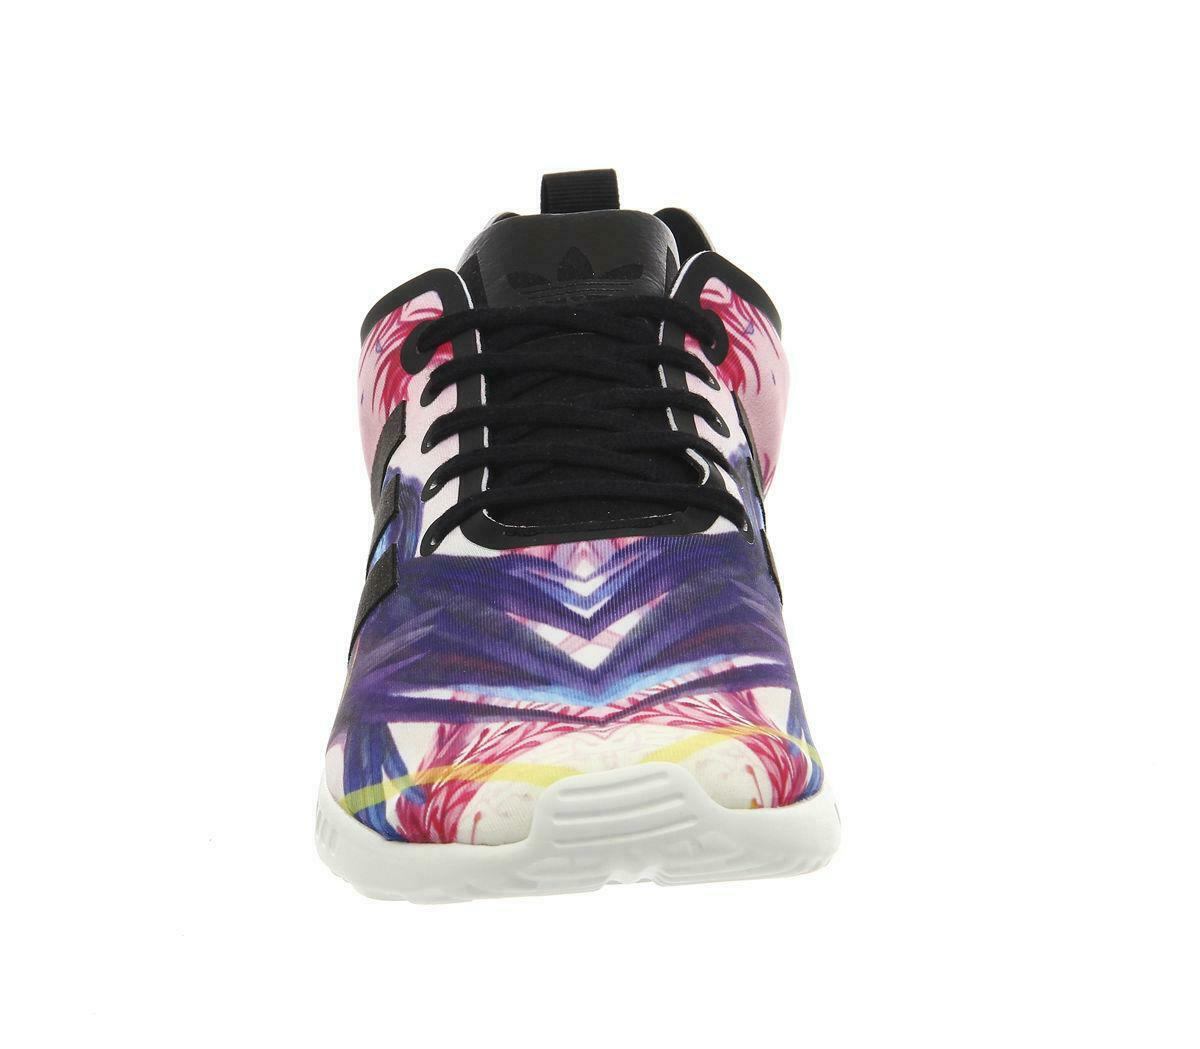 f504f117a adidas ZX Flux Smooth W Women s SNEAKERS Black S82937 Leisure Trainers US 9  for sale online